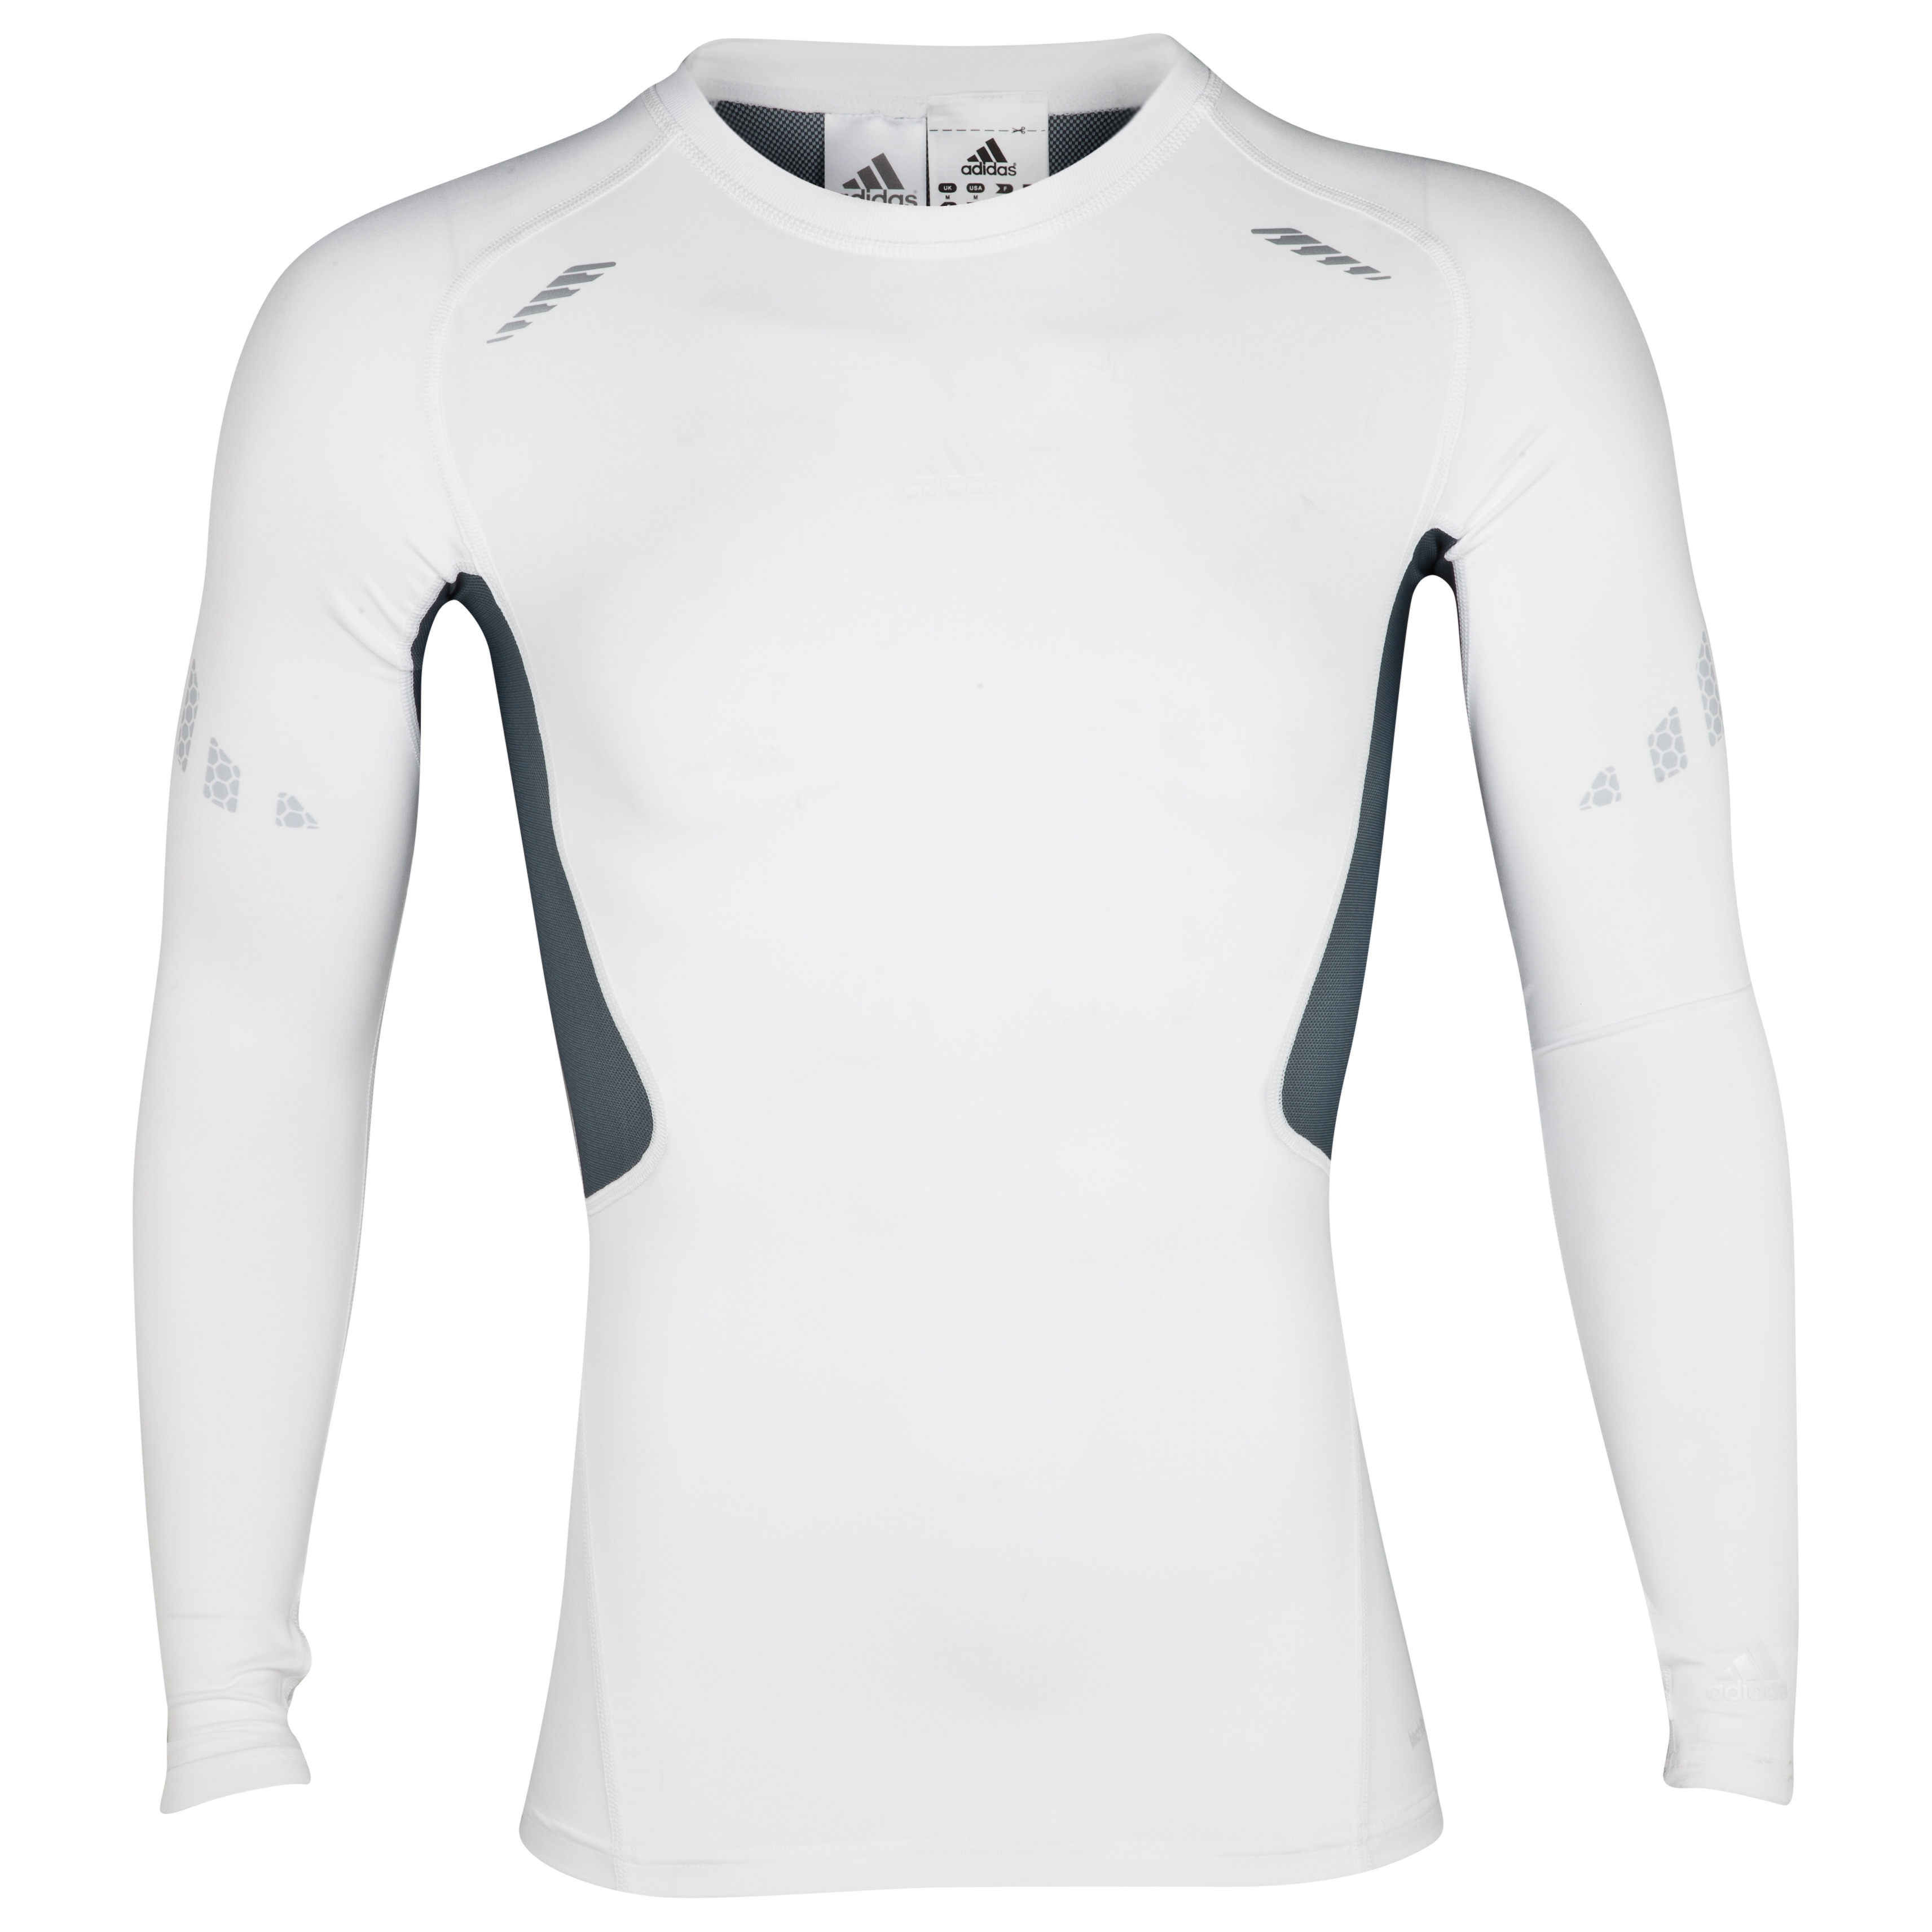 Adidas TechFit Preperation Top - Long Sleeve - White